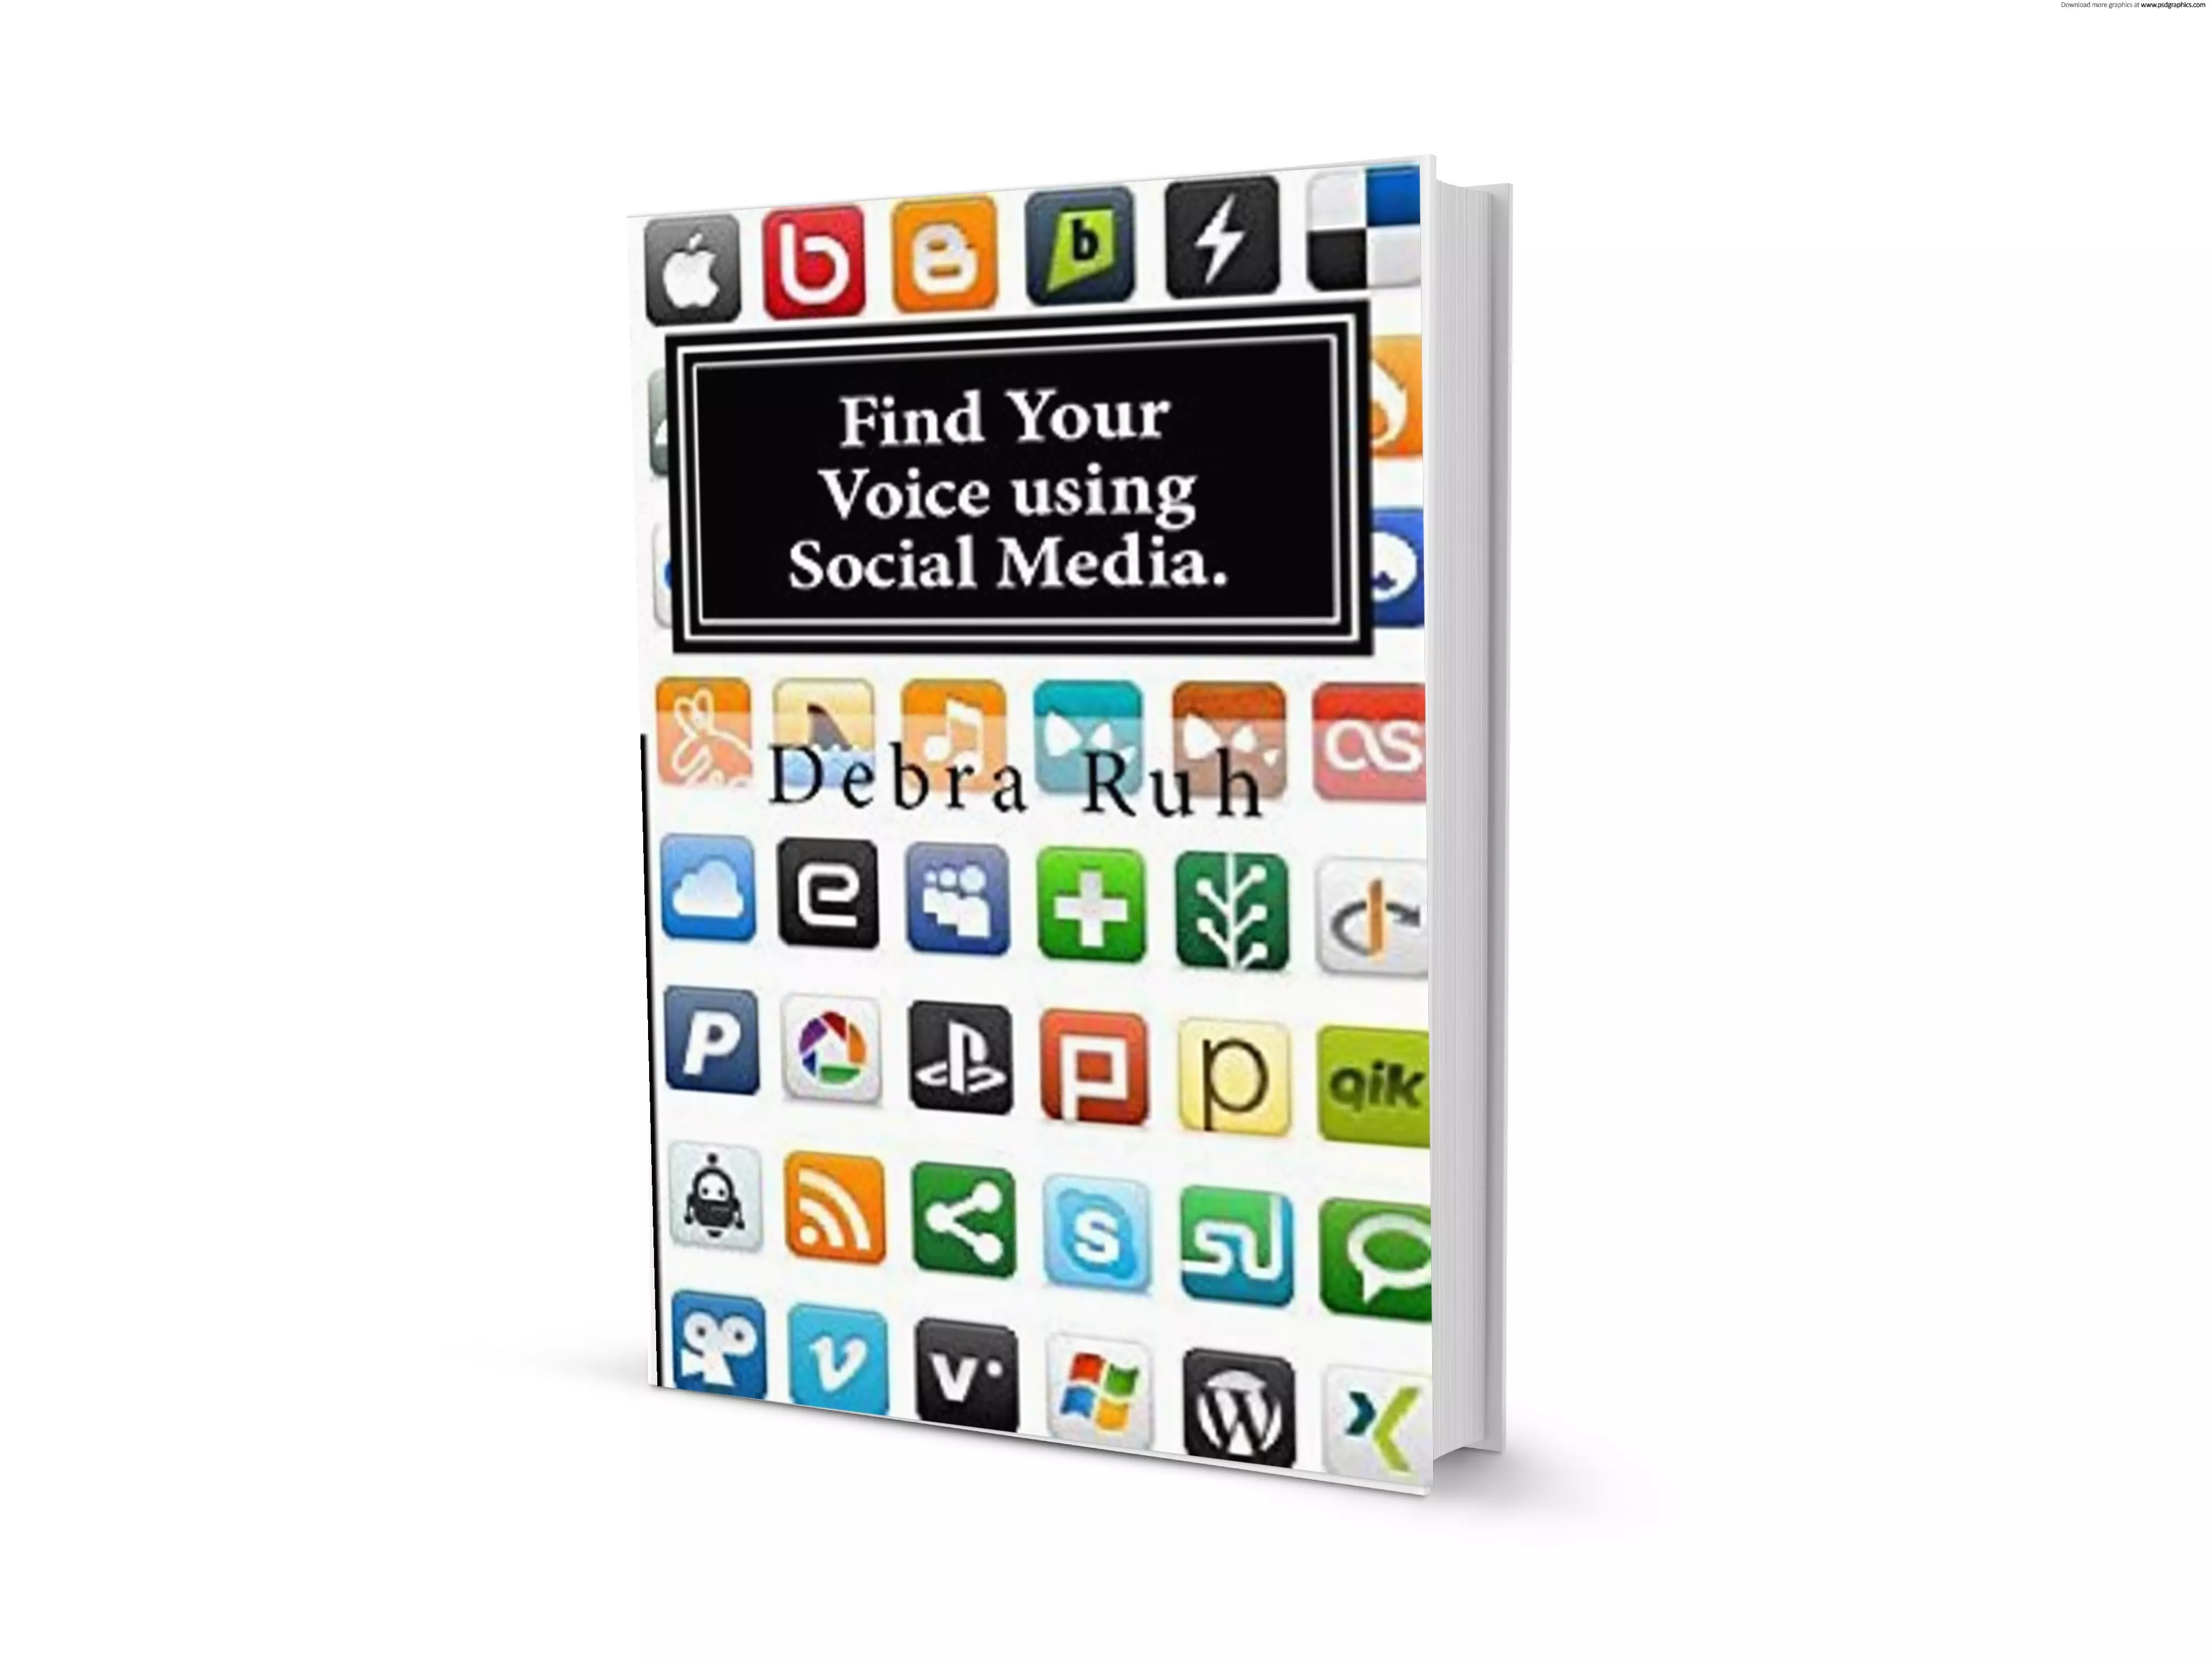 Find Your Voice Using Social Media cover.